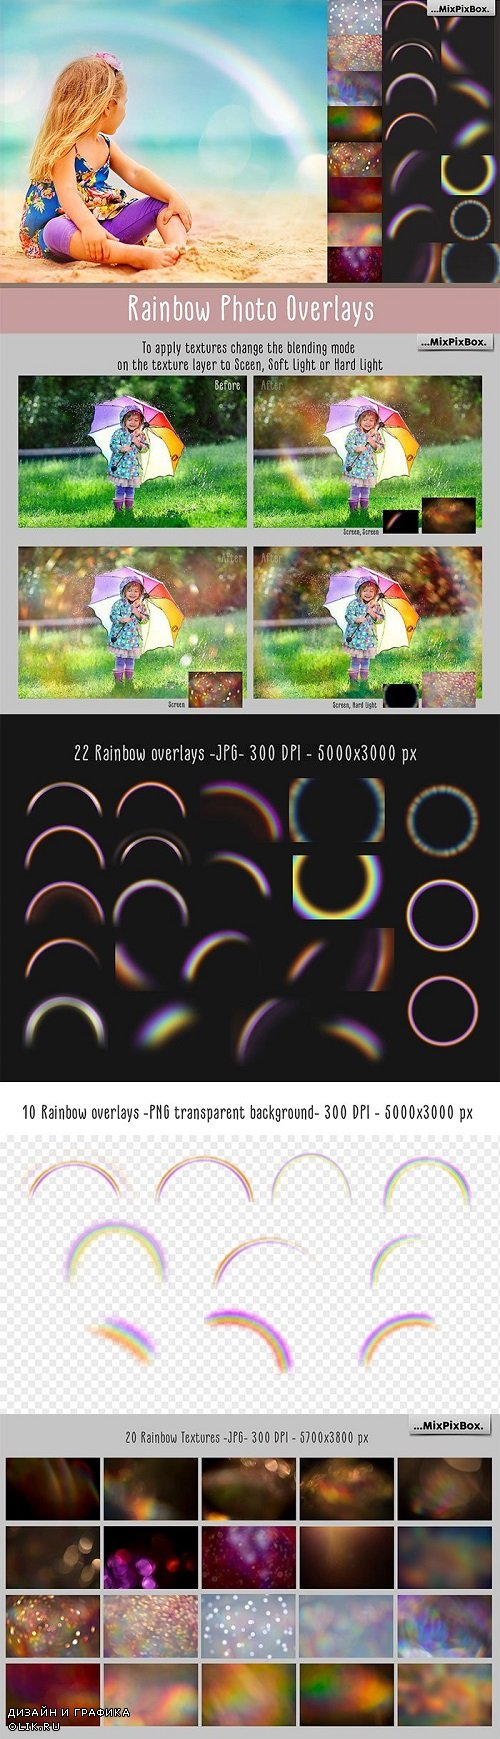 Rainbow overlays & textures - 1659079